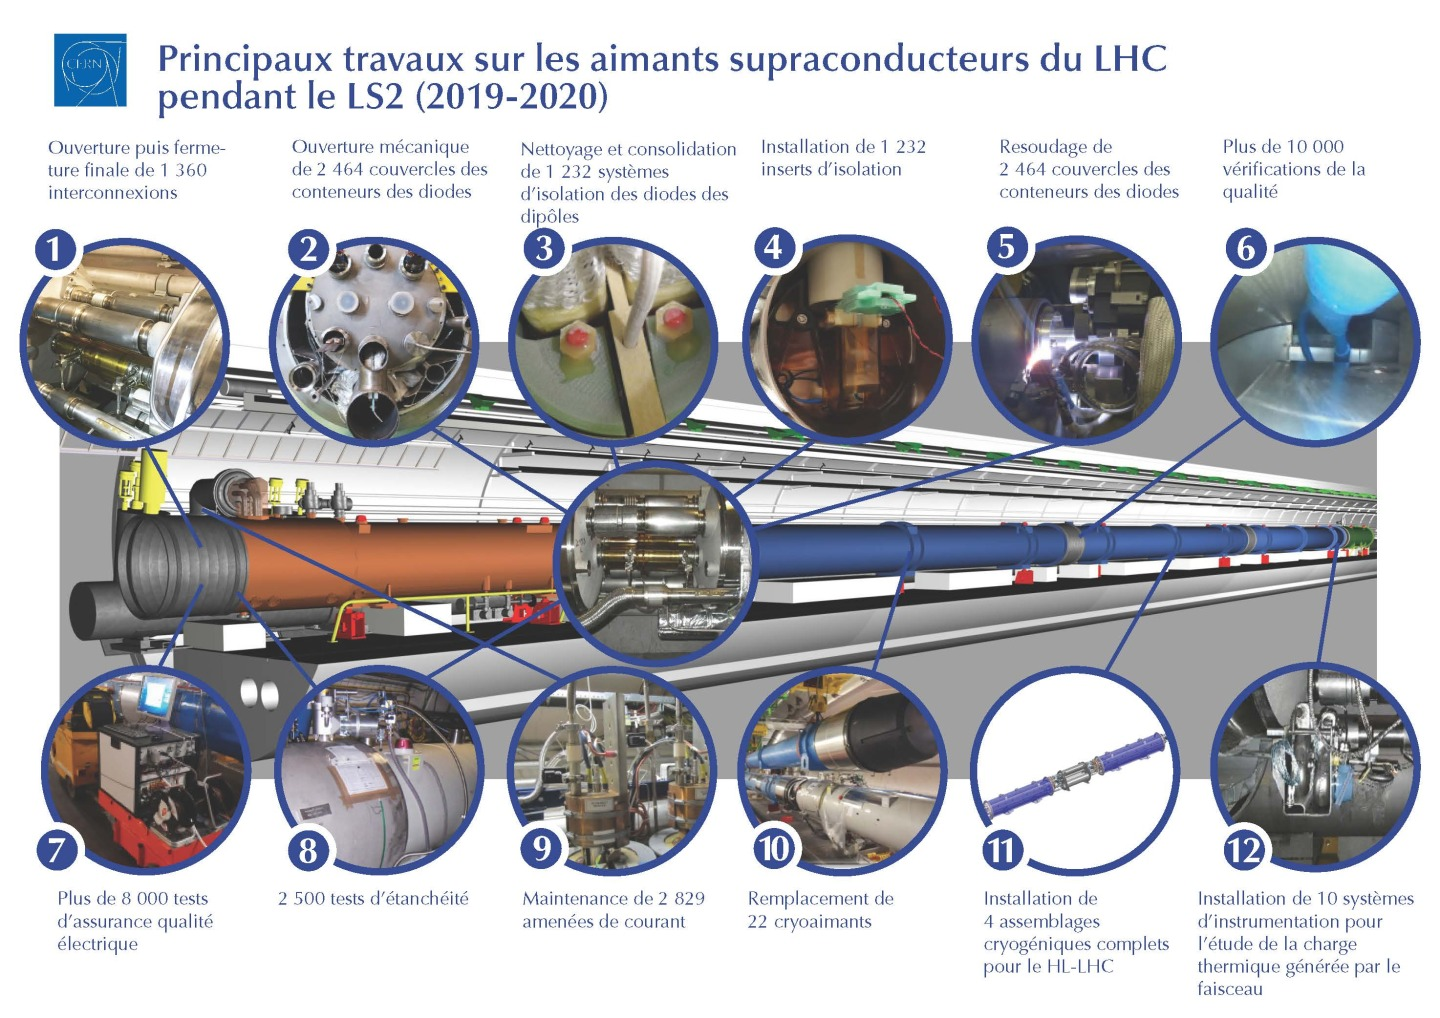 Infographic of main work on the LHC superconducting magnets during LS2